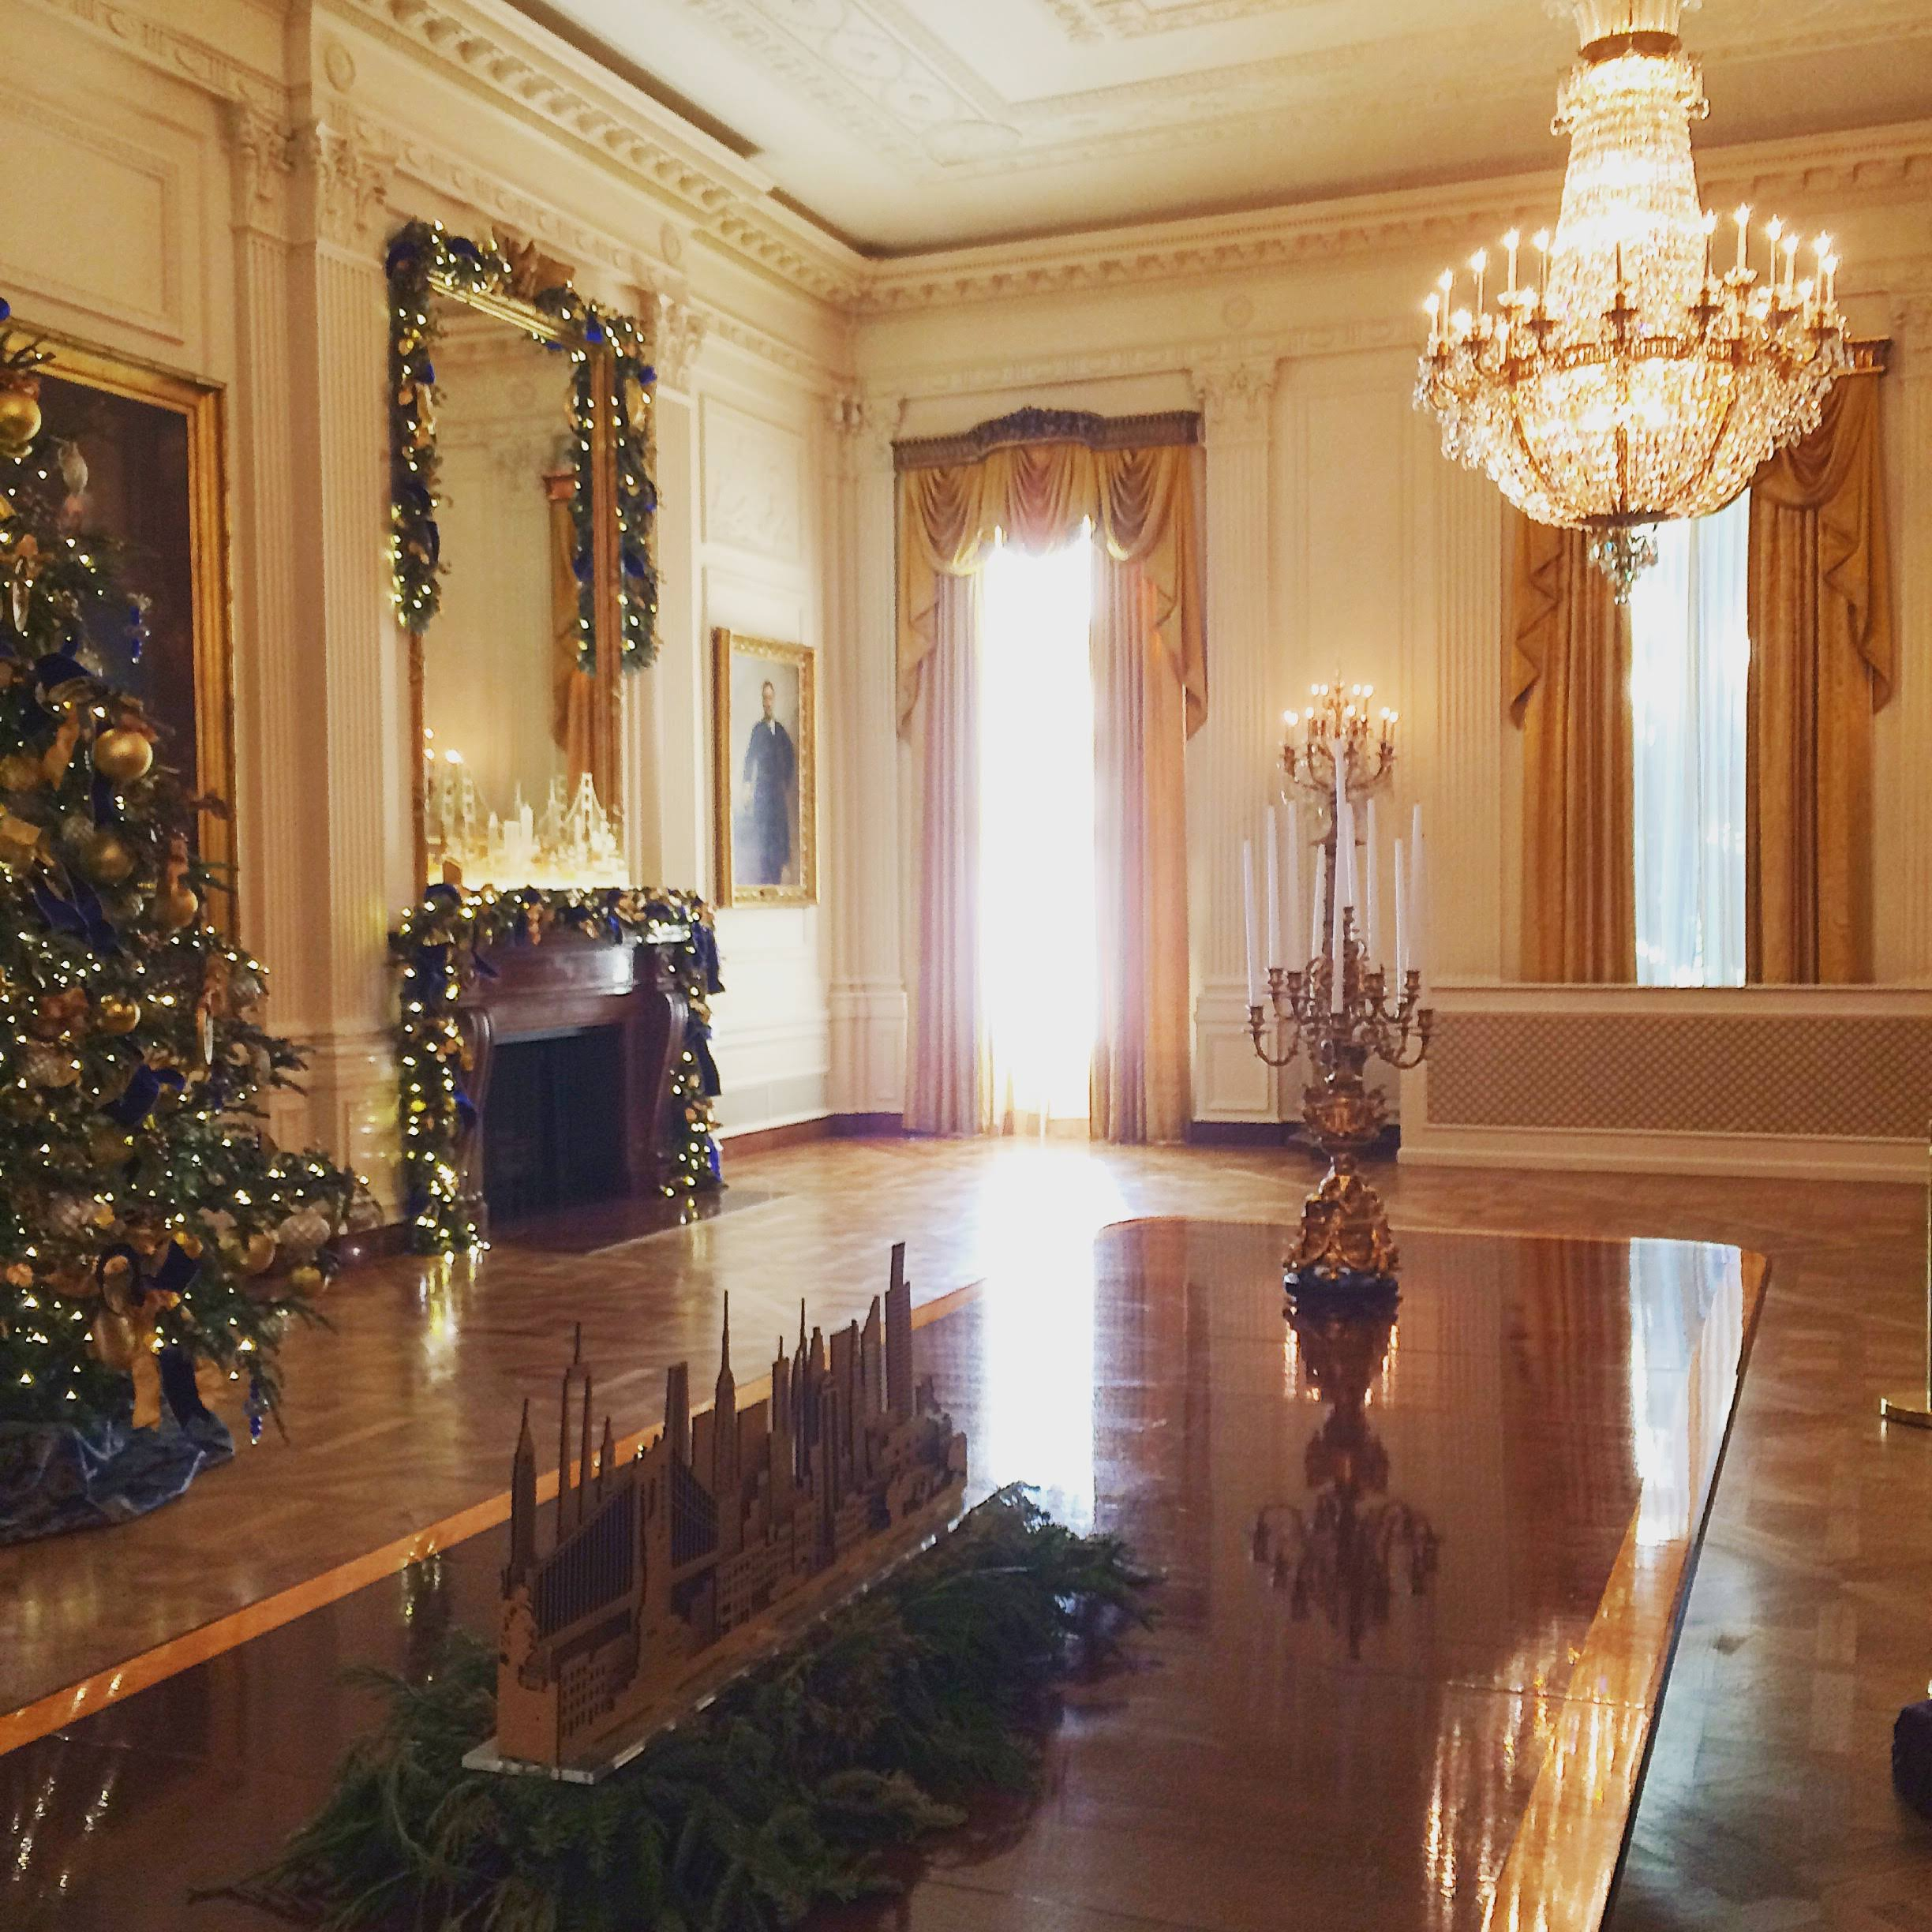 Tour of the East Wing of the White House